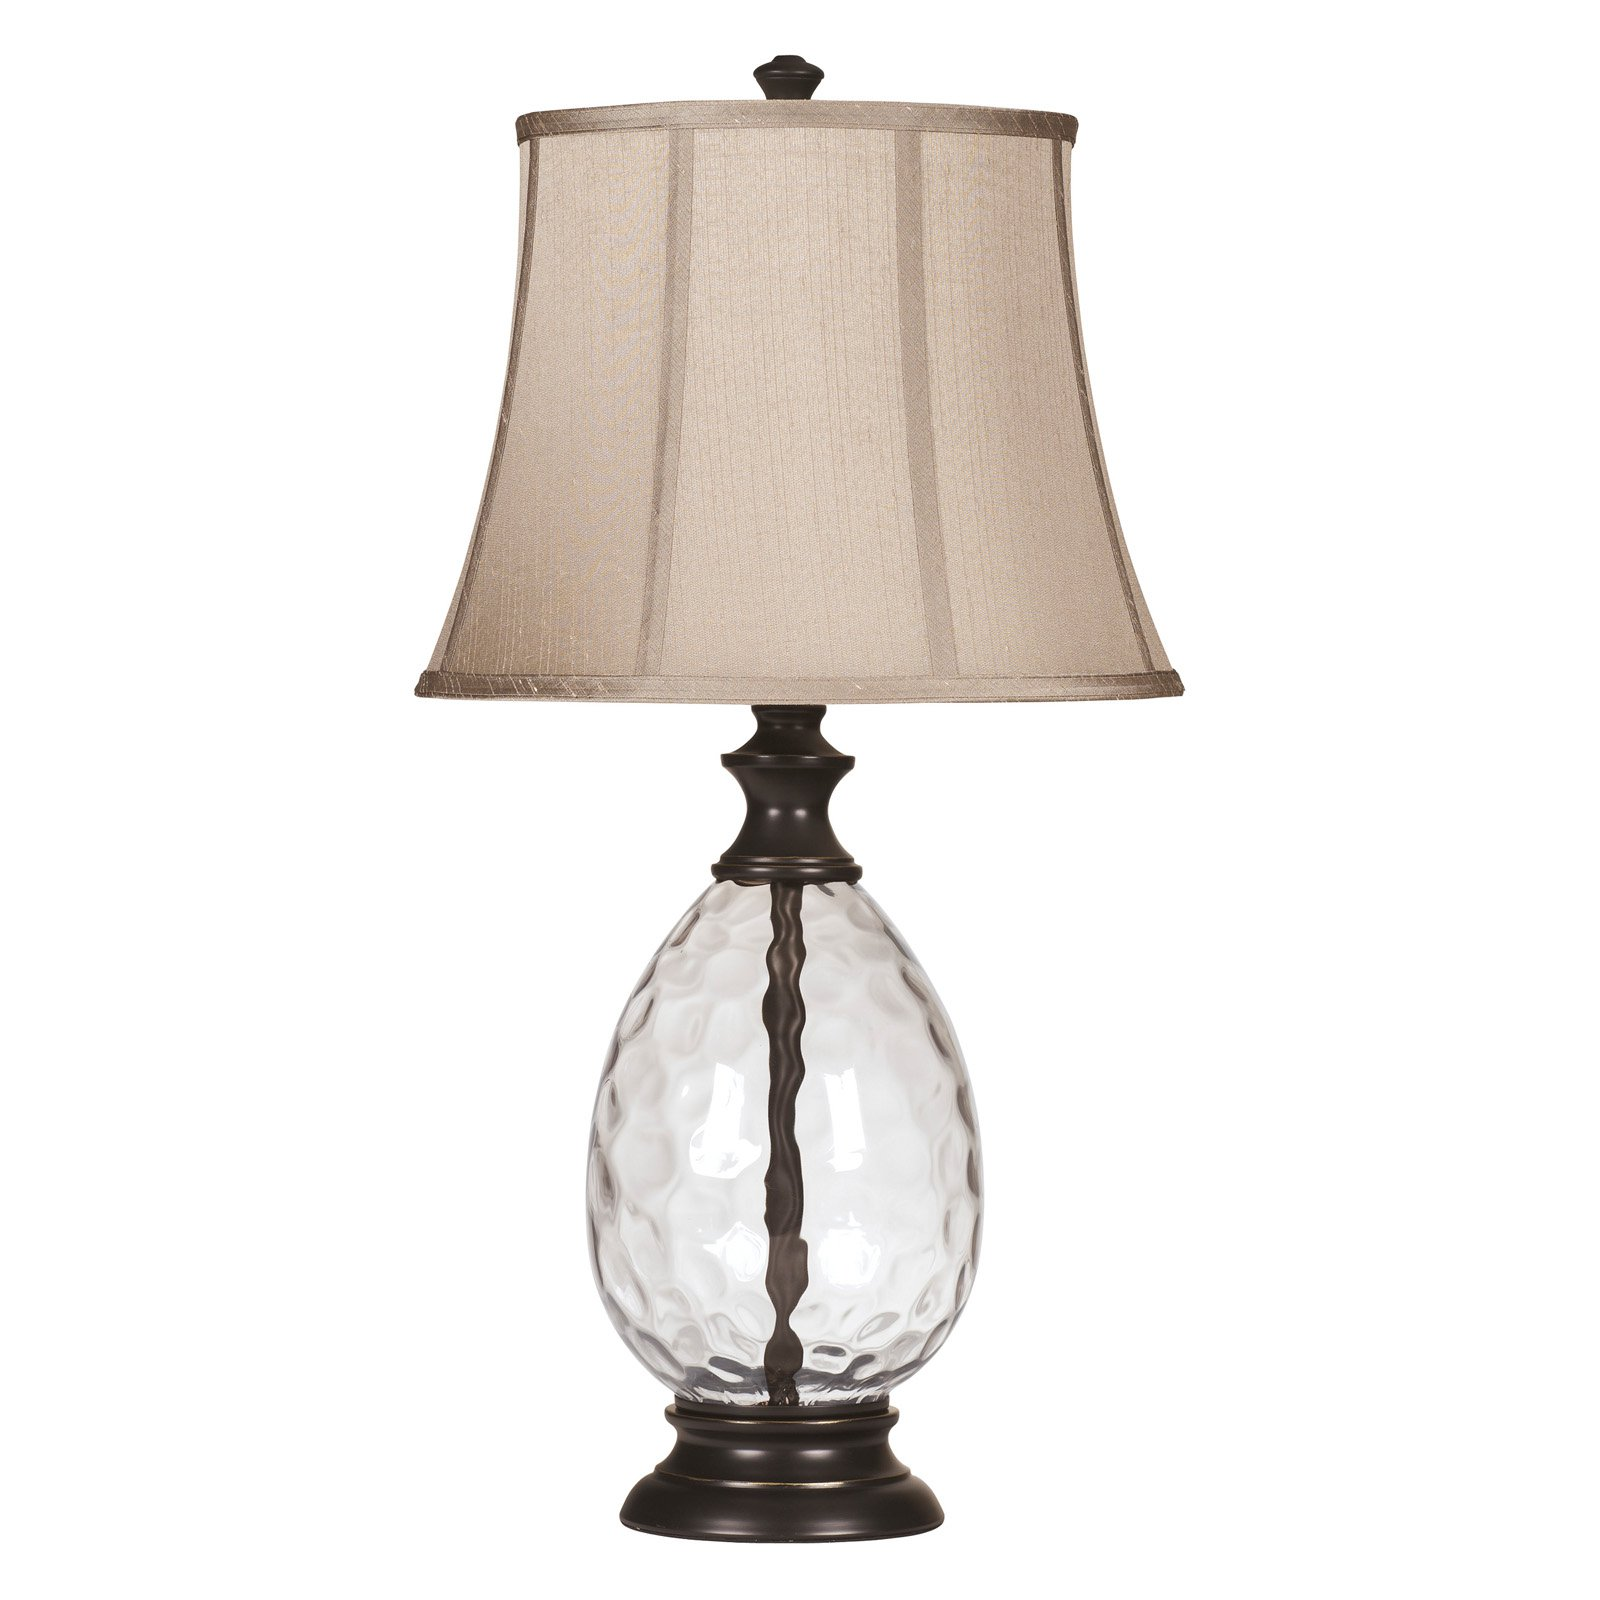 Charmant Signature Design By Ashley L440234 Olivia Table Lamp   Set Of 2    Walmart.com